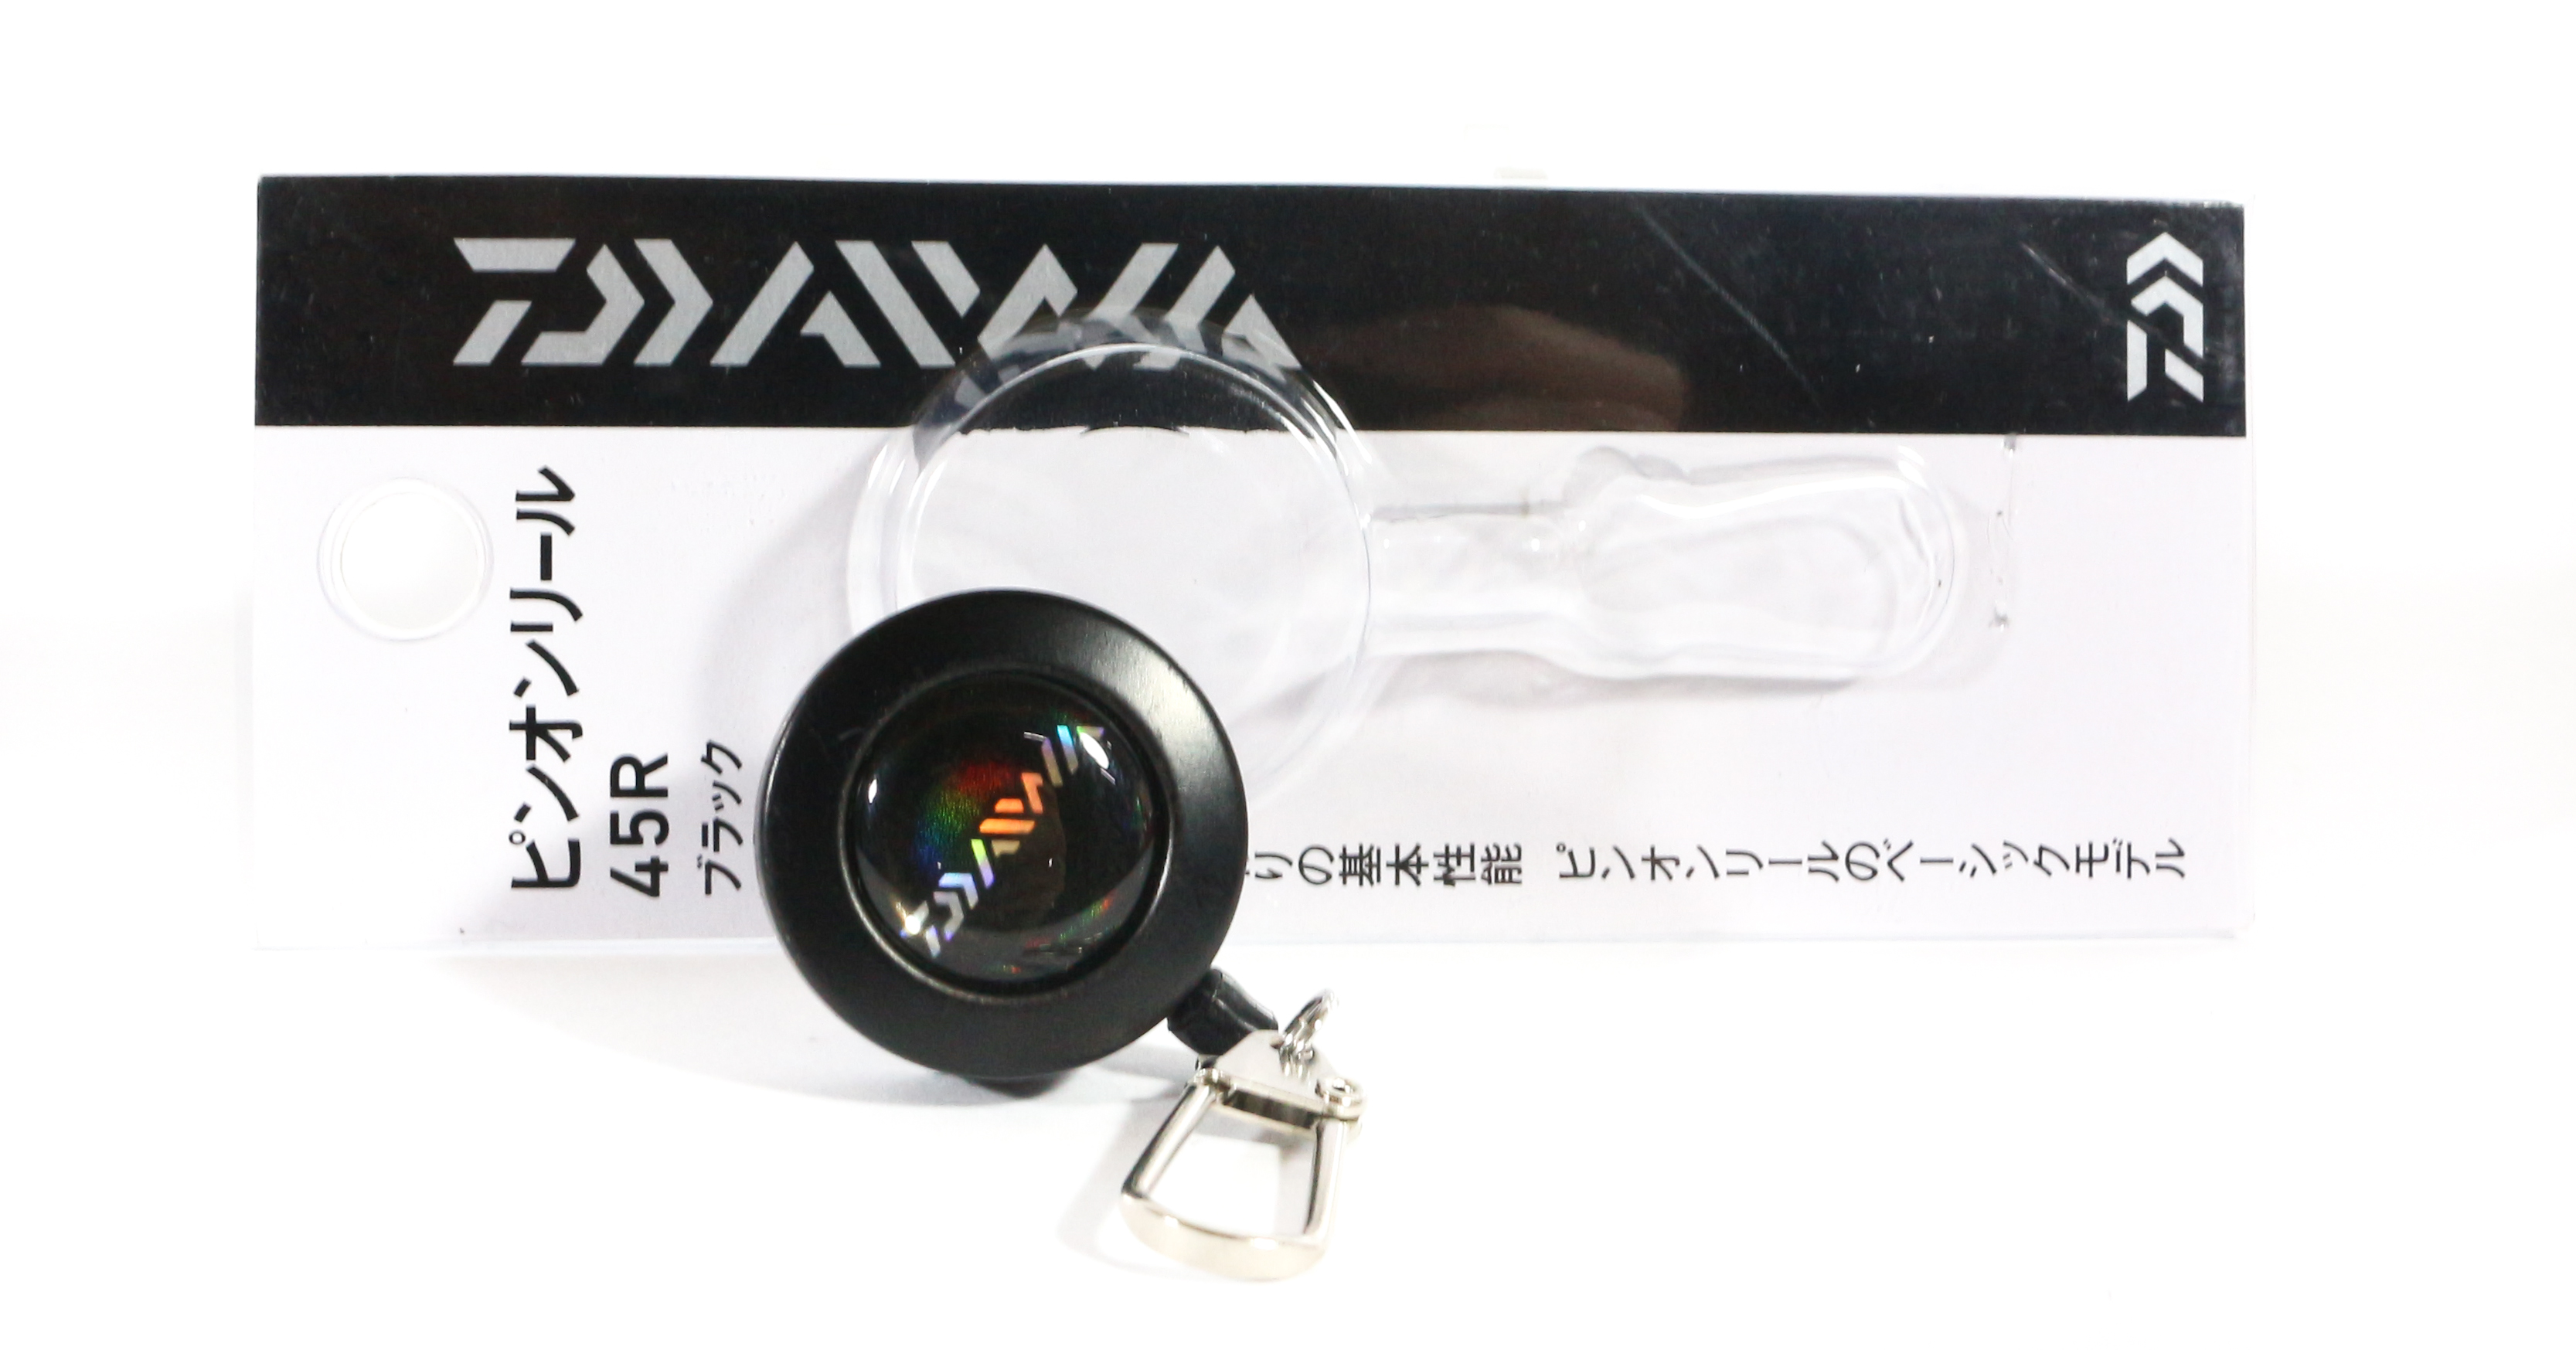 Sale Daiwa 45 R Pin On Reel Black (0549)